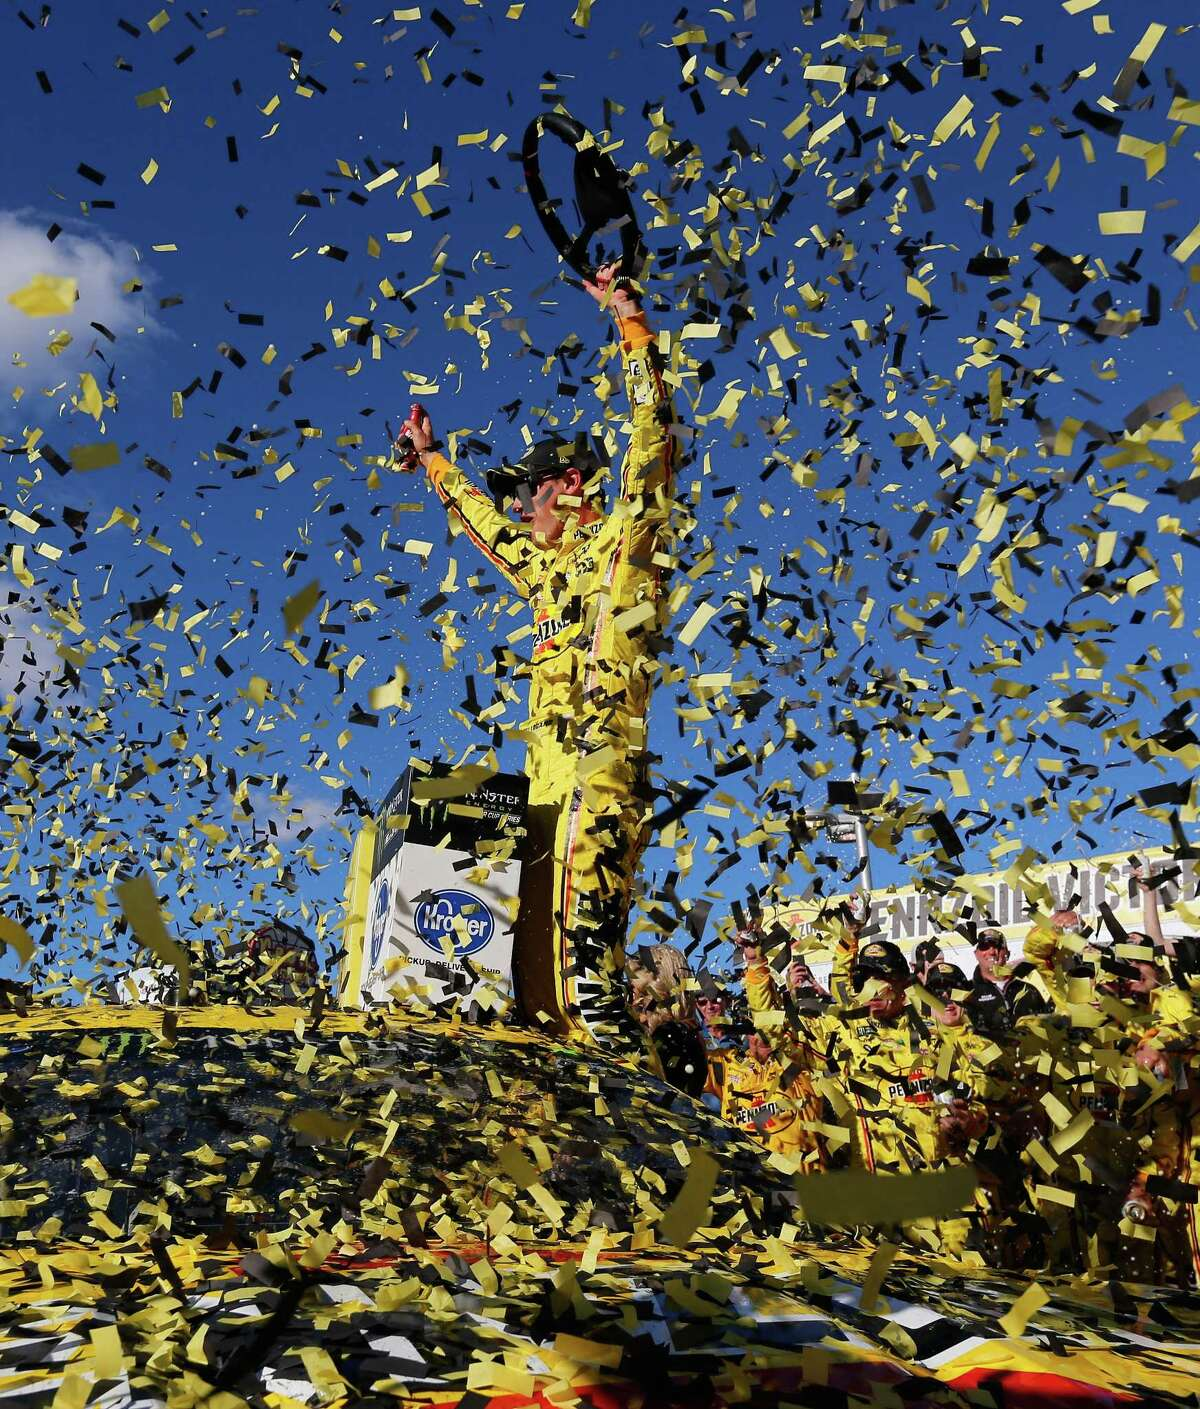 LAS VEGAS, NV - MARCH 03: Joey Logano, driver of the #22 Pennzoil Ford, celebrates in Victory Lane after winning the Monster Energy NASCAR Cup Series Pennzoil Oil 400 at Las Vegas Motor Speedway on March 3, 2019 in Las Vegas, Nevada. (Photo by Jonathan Ferrey/Getty Images)